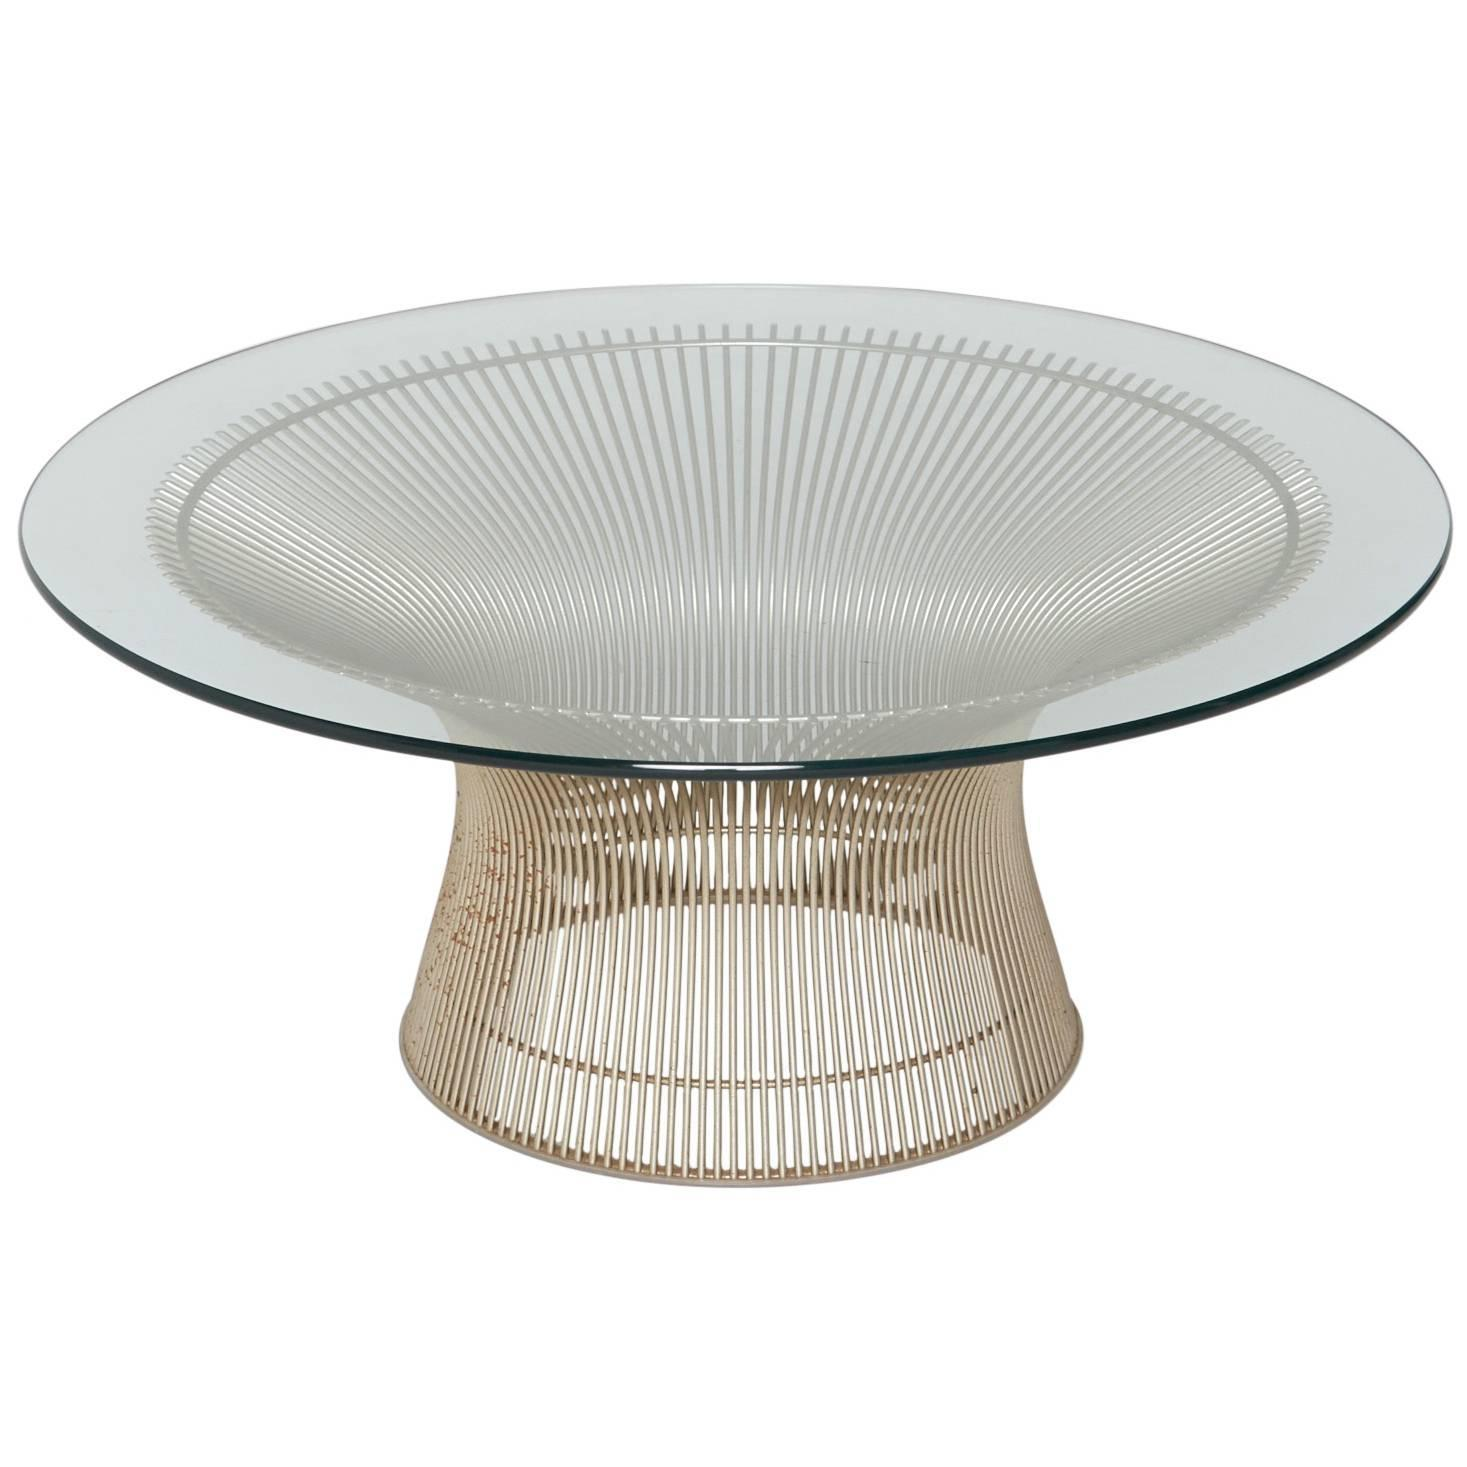 Warren Platner for Knoll International Coffee or Cocktail Table in